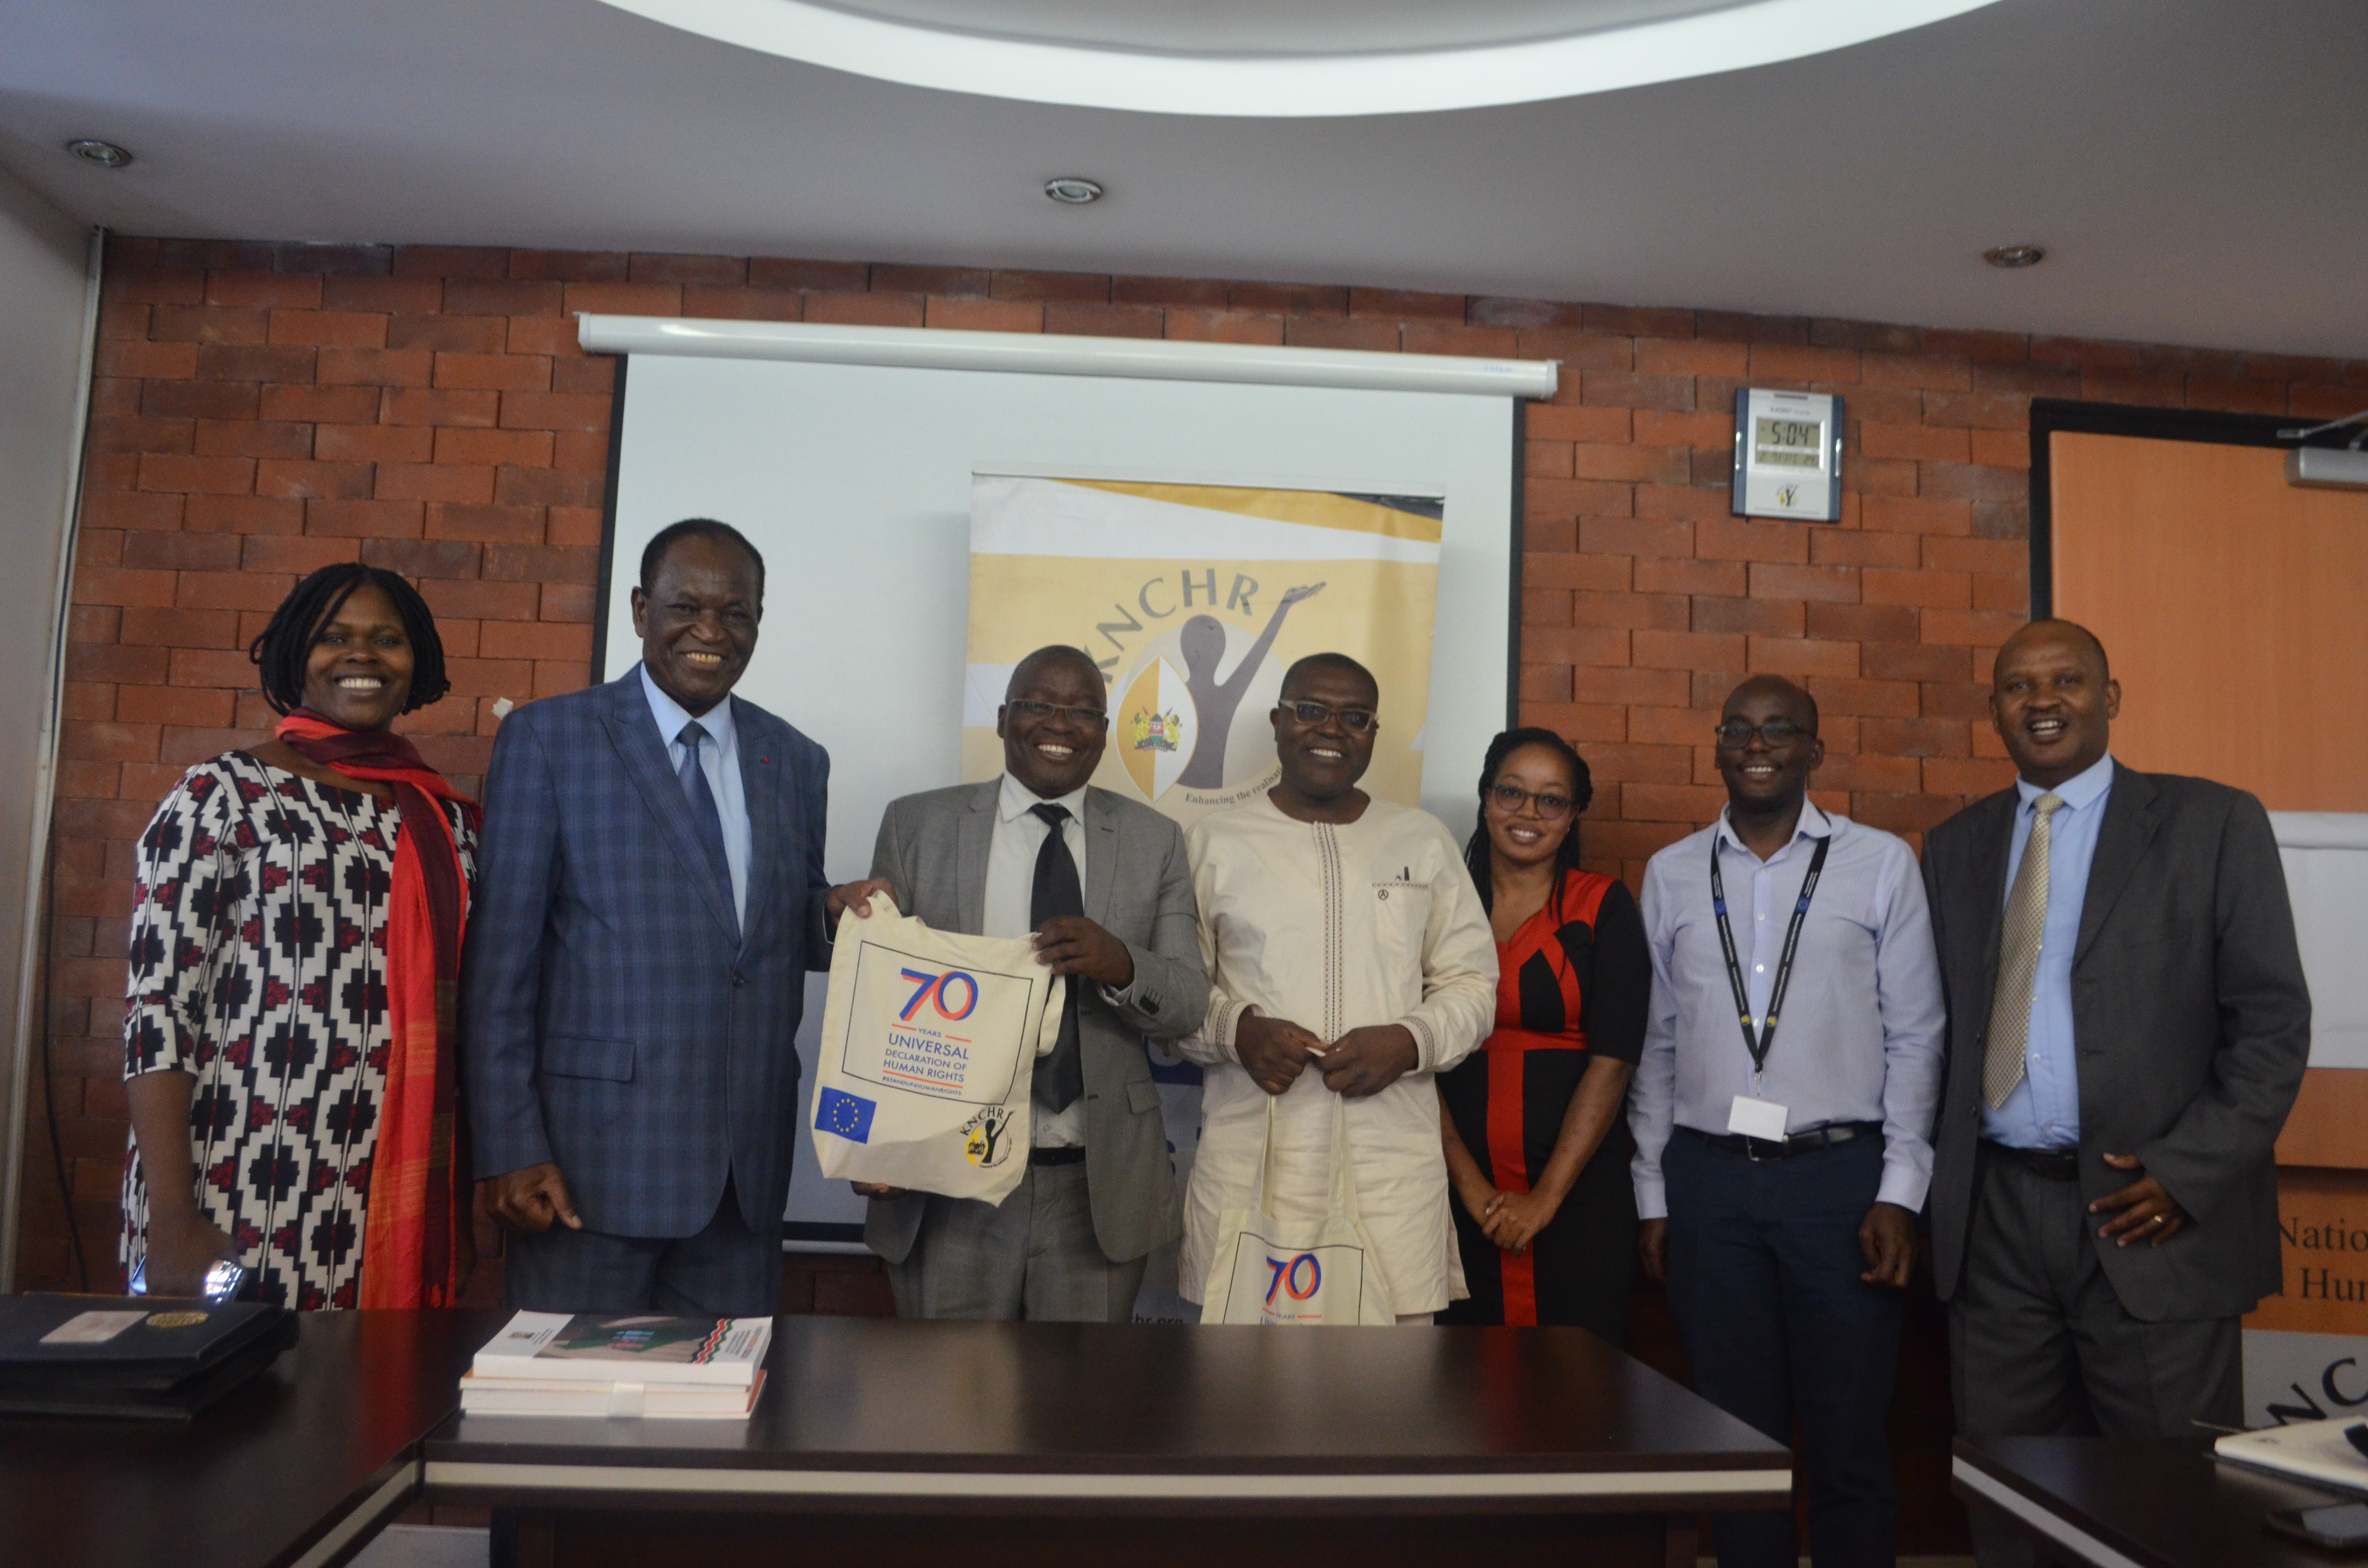 KNCHR Meets the Cameroon National Commission on Human Rights.